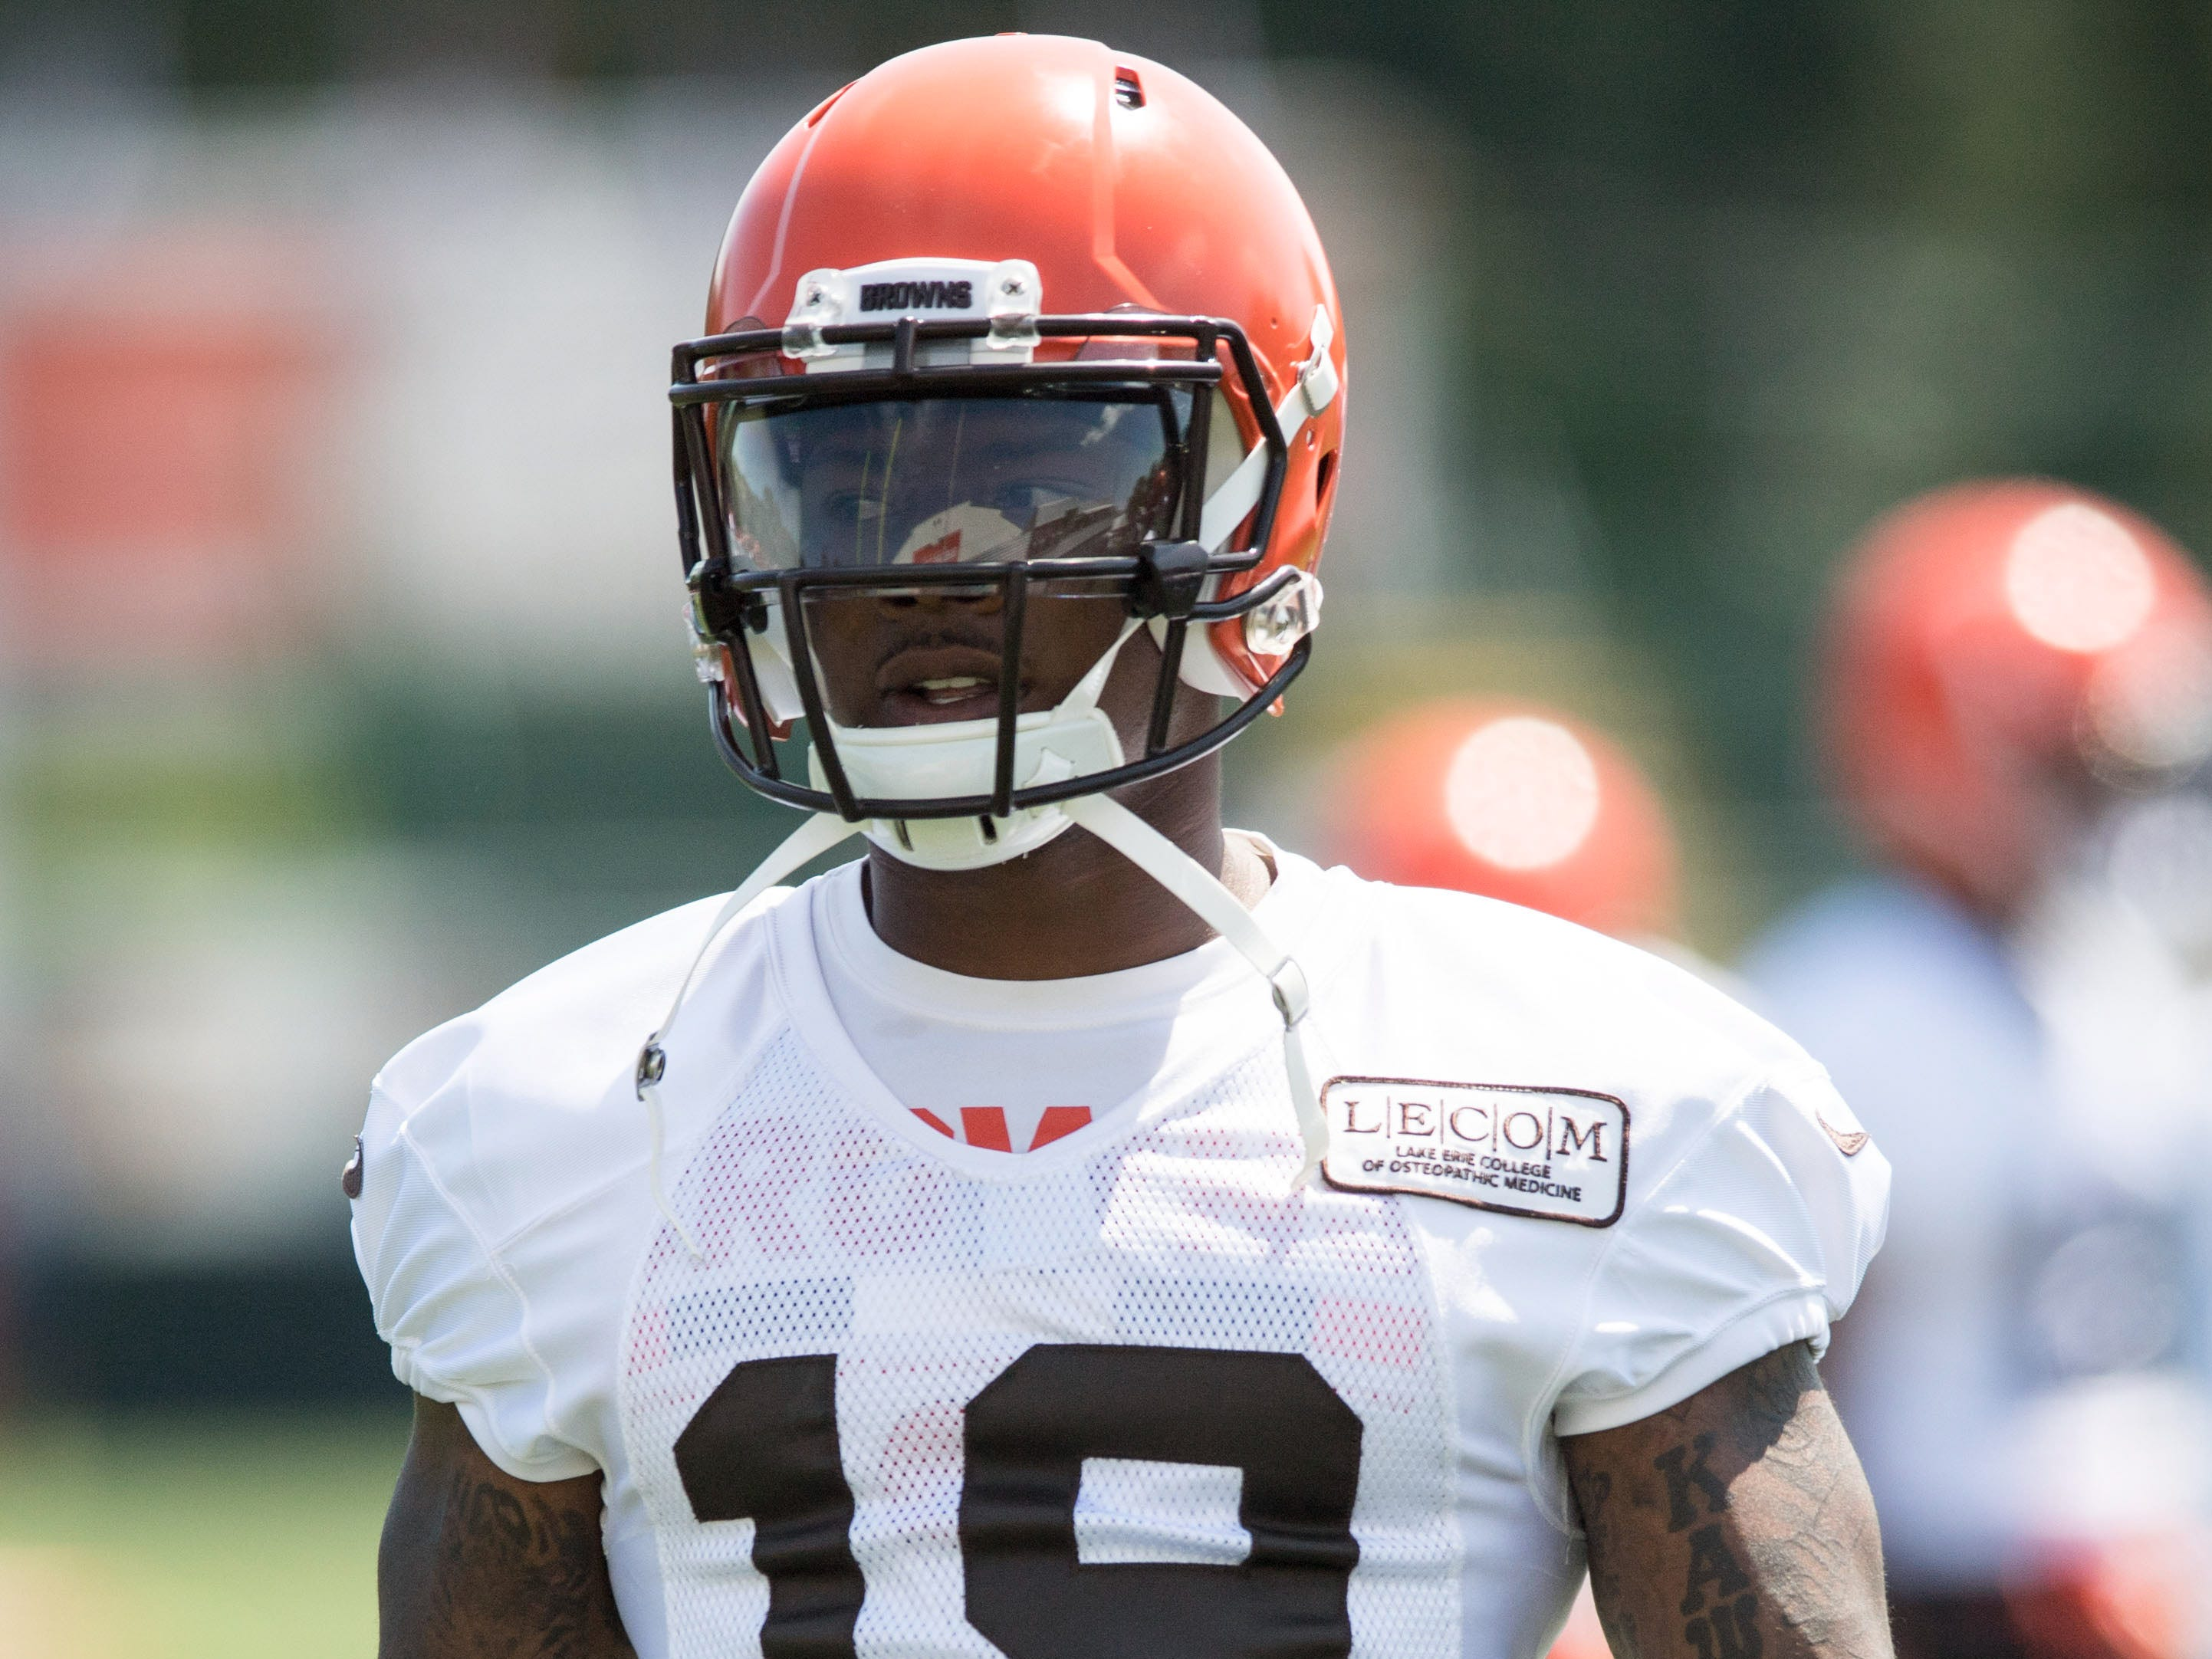 Corey Coleman was traded to the Bills on Aug. 5.